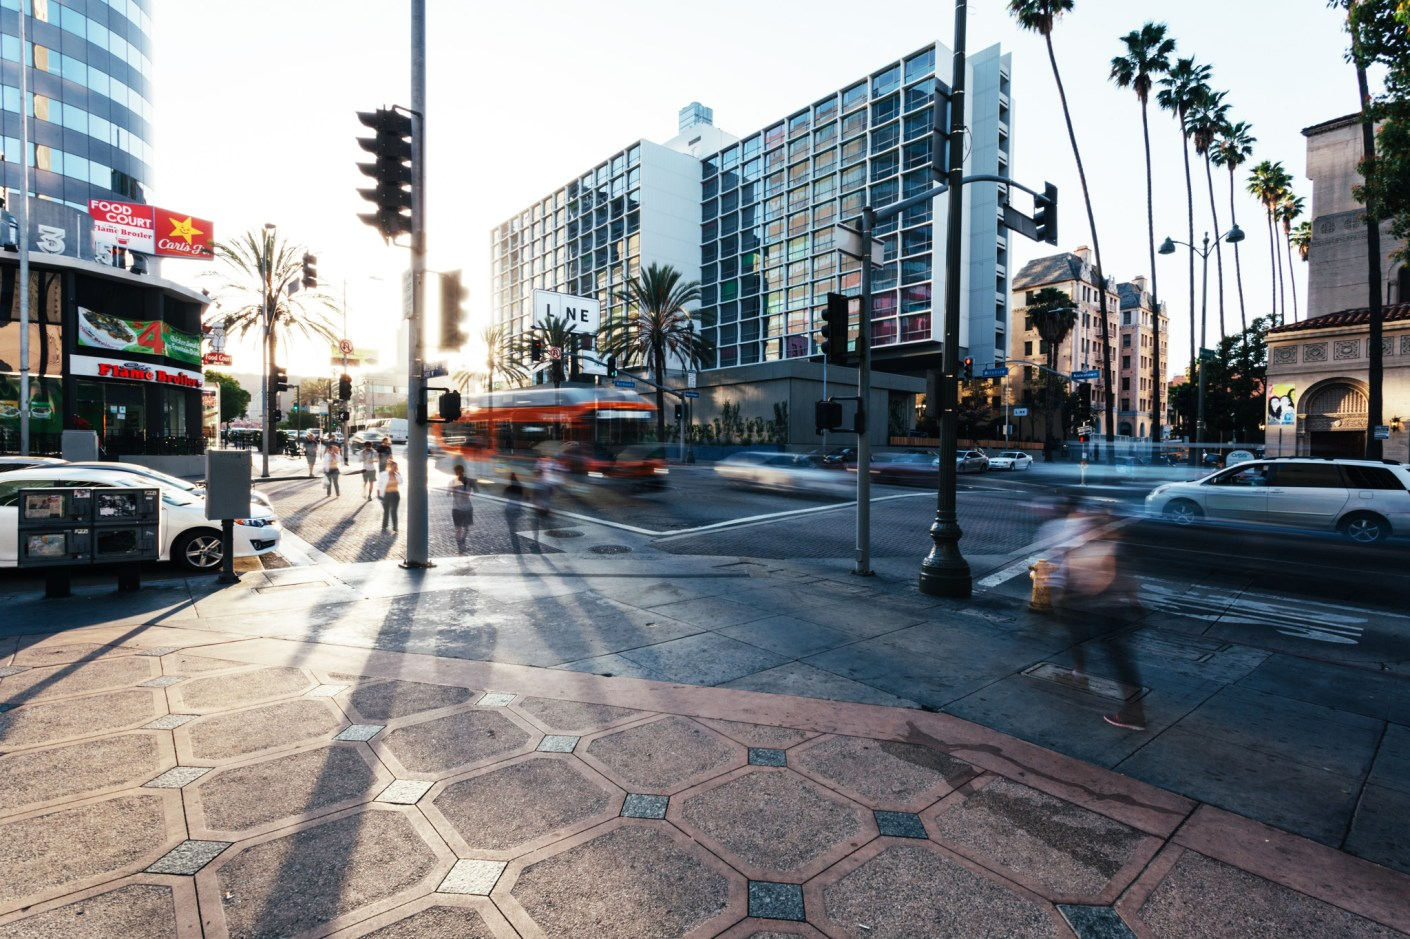 Image of Koreatown, LA: It's About Time - The Emergence of Koreatown